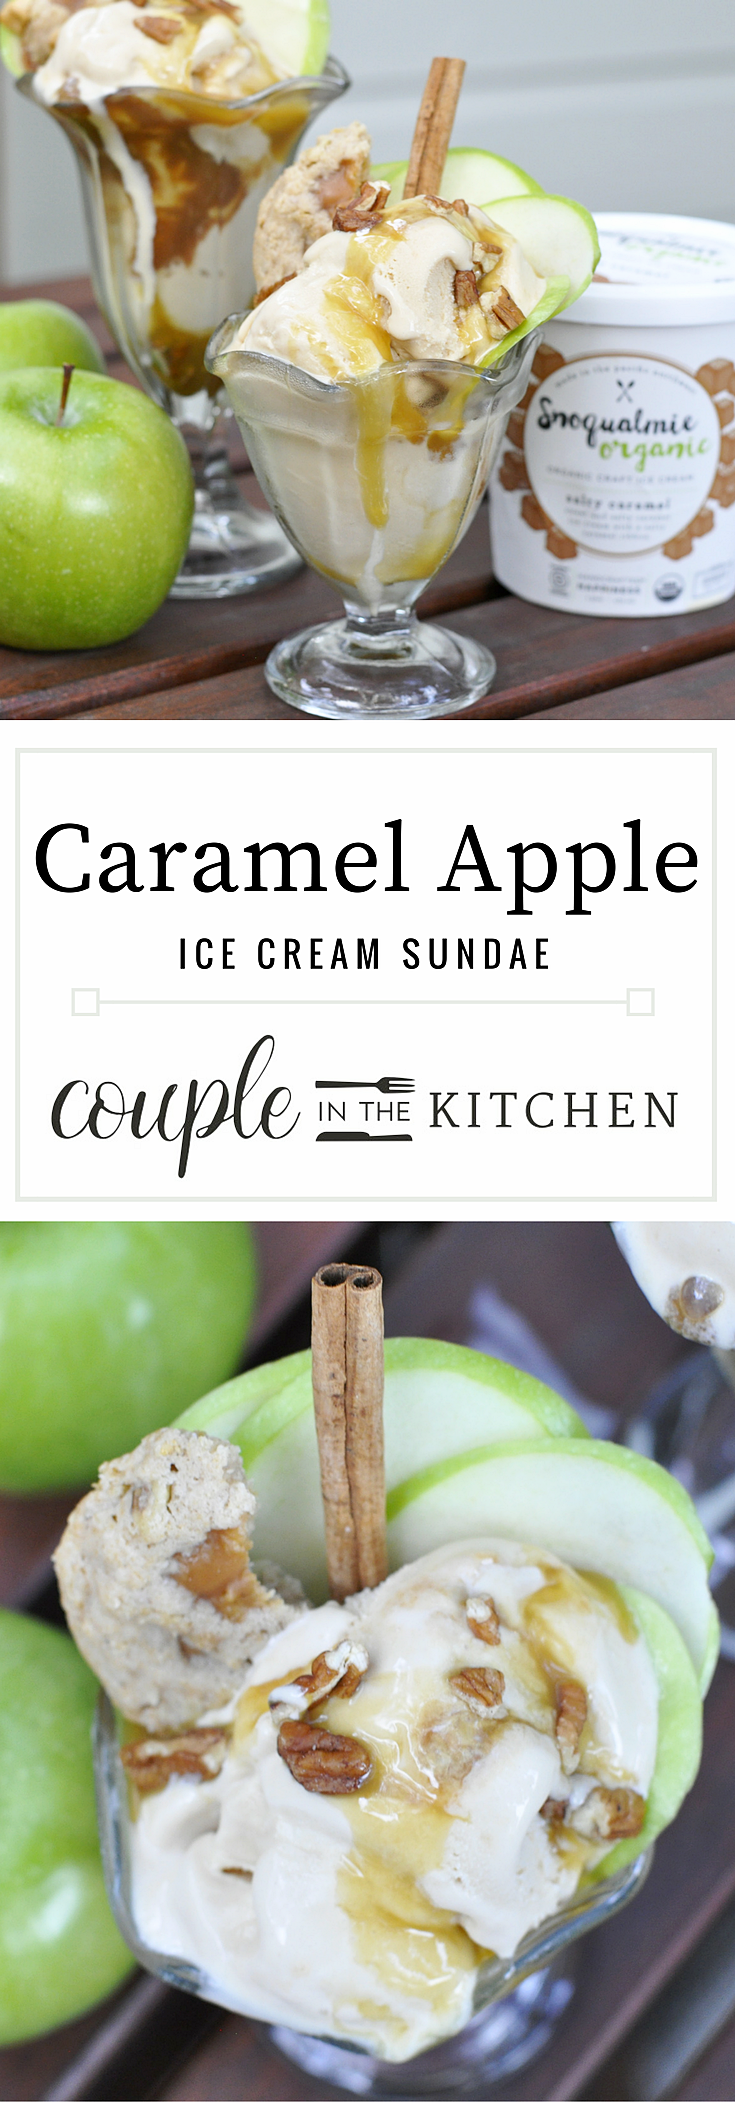 Caramel Apple Recipe | Caramel Apple Ice Cream Sundae Idea | coupleinthekitchen.com